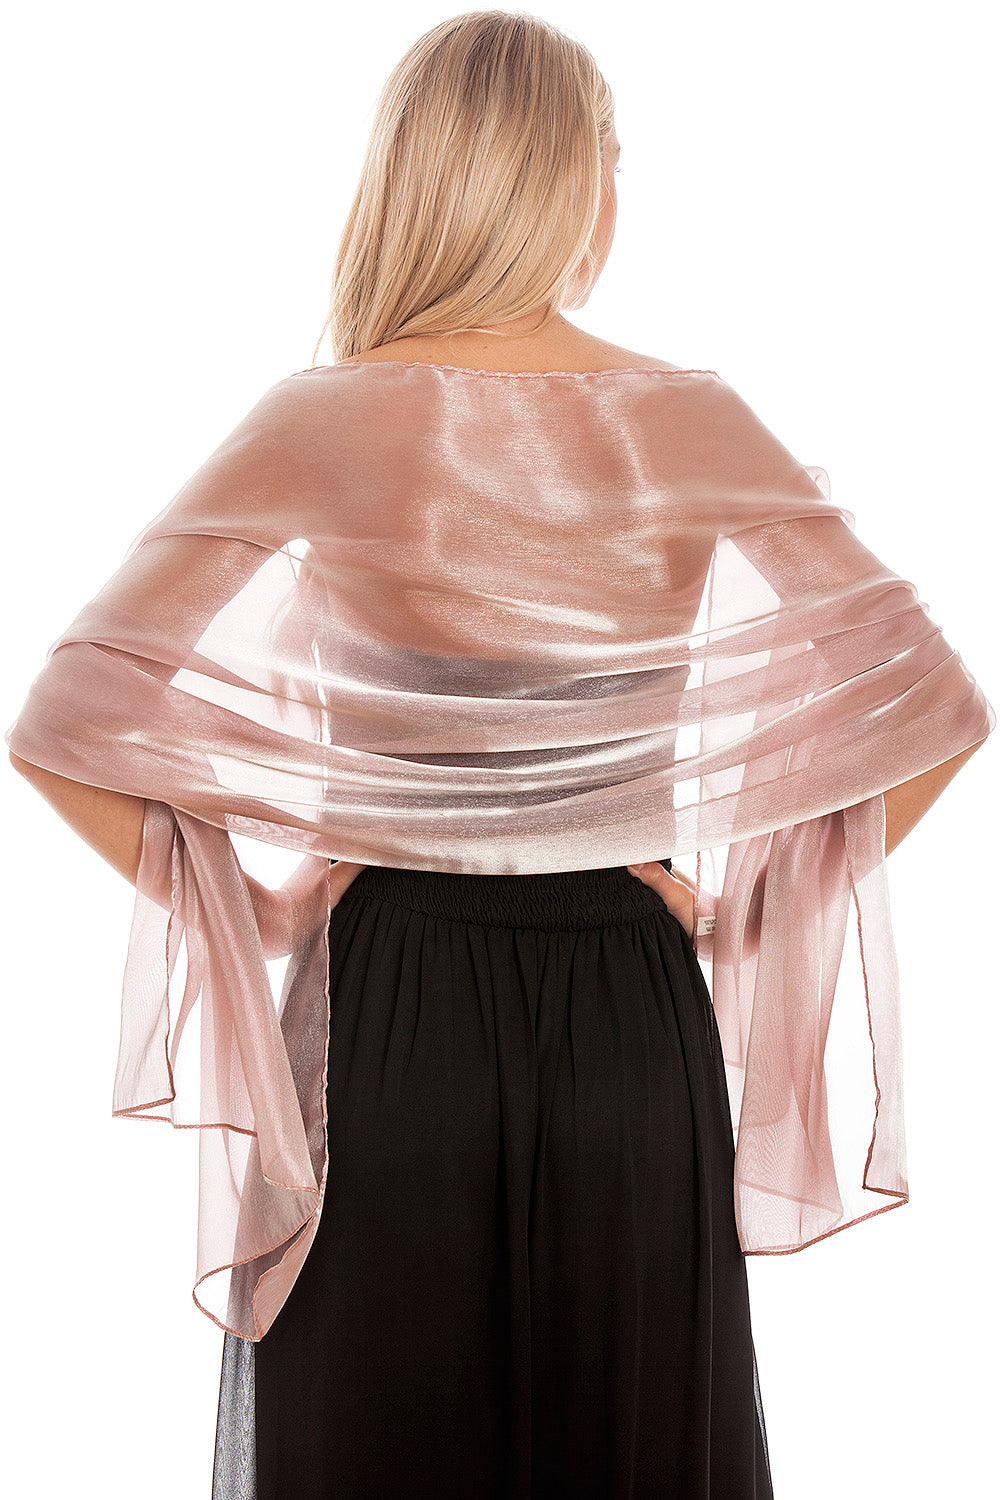 944ab248e36d6 ... Load image into Gallery viewer, Dusky Pink Silky Wedding Wrap